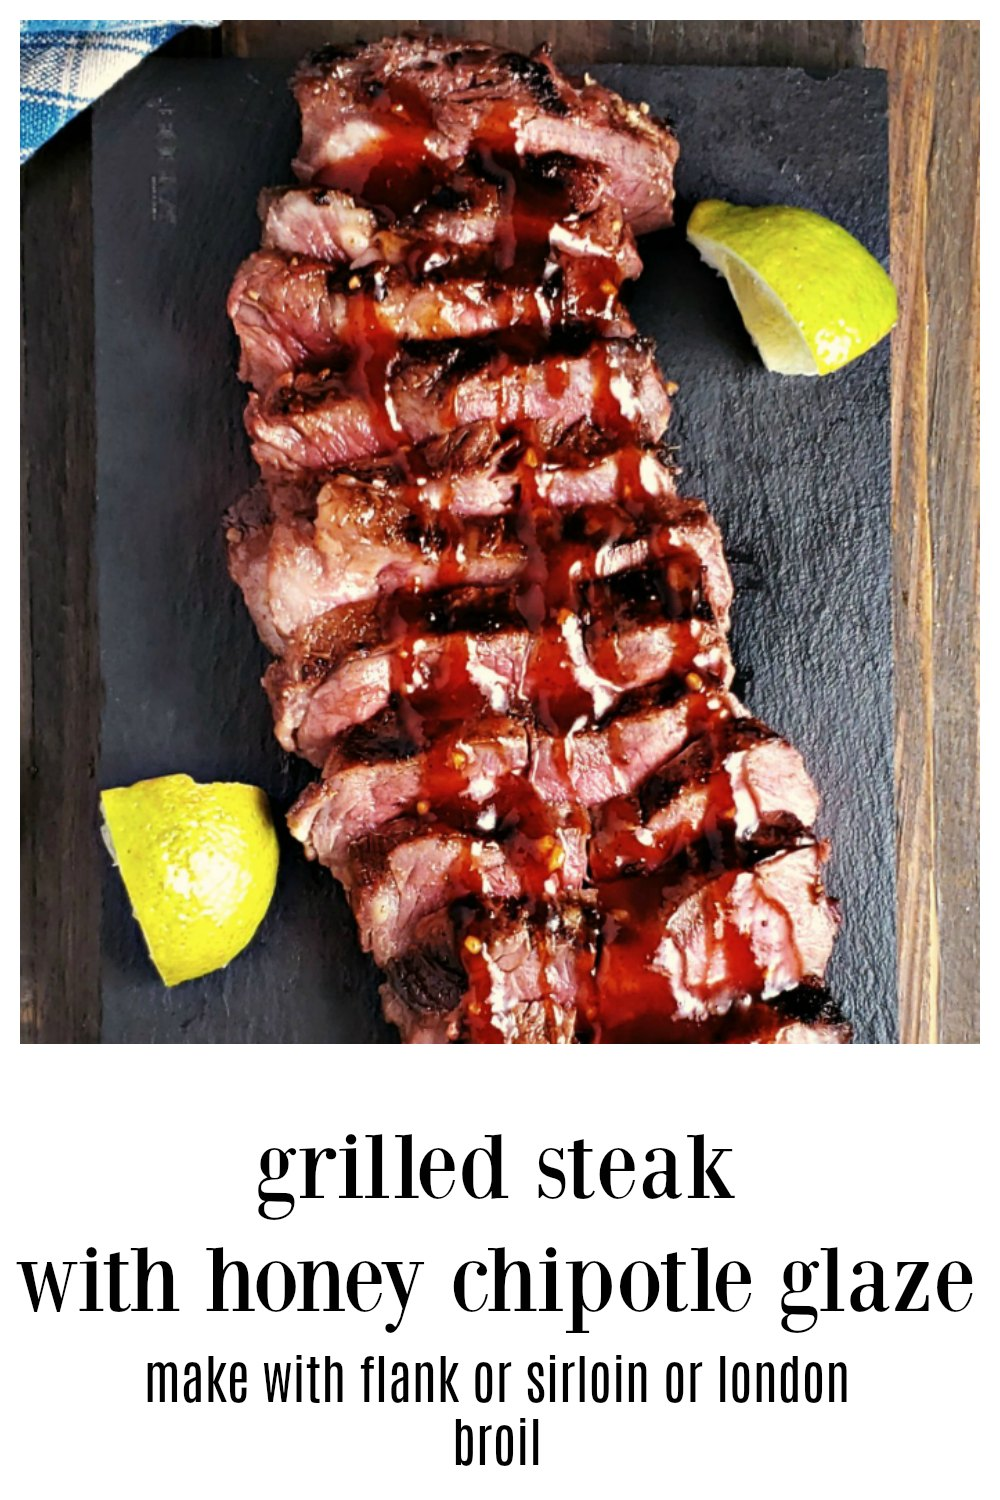 Grilled Steak with Honey Chipotle Glaze is gonna blow you away! Not any heat to speak of just a lot of personality. It's going to be your new fave! This glaze is fab on just about any steak and I often make it with sirloin when flank is too pricey! #GrilledSteak #FlankSteak #GrilledFlankSteak #SteakChipotleGlaze #GrilledSteakHoneyChipotleGlaze